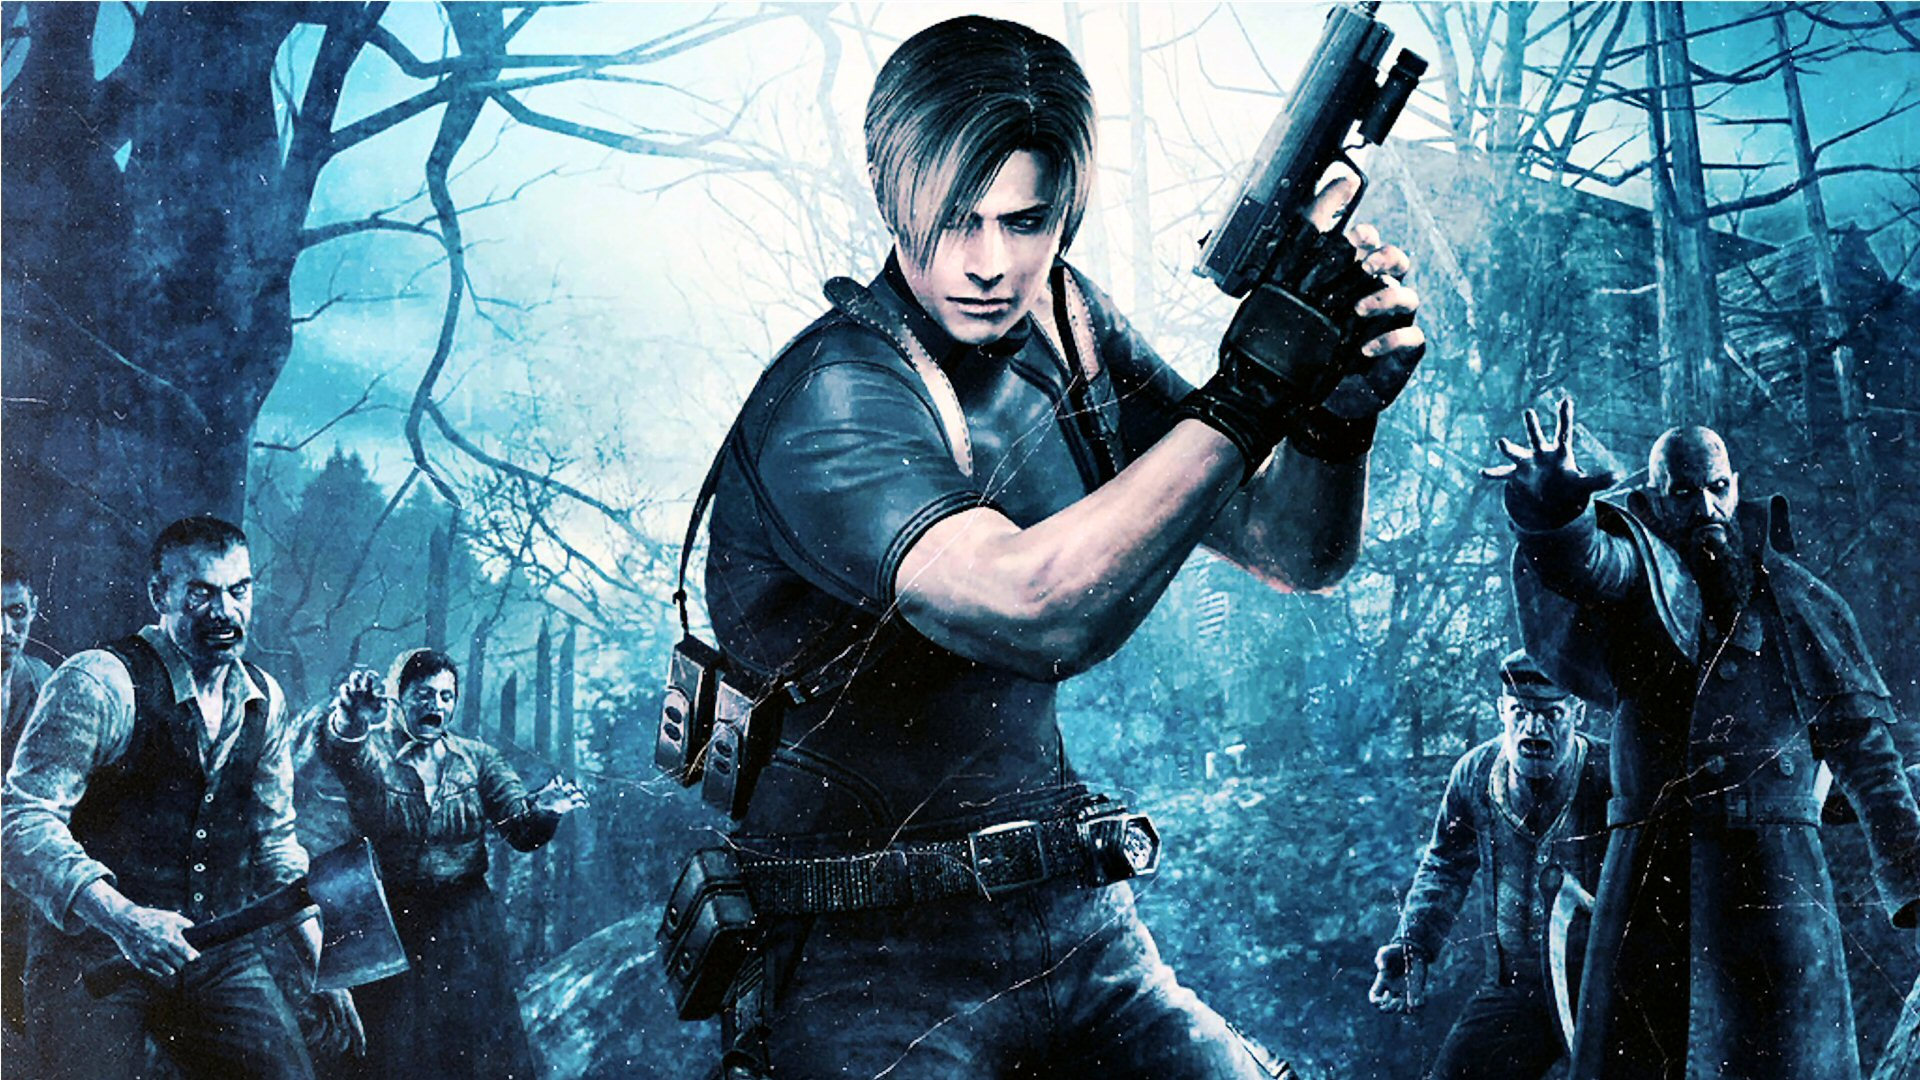 Hd wallpaper resident evil - Resident Evil Wallpapers High Quality Free